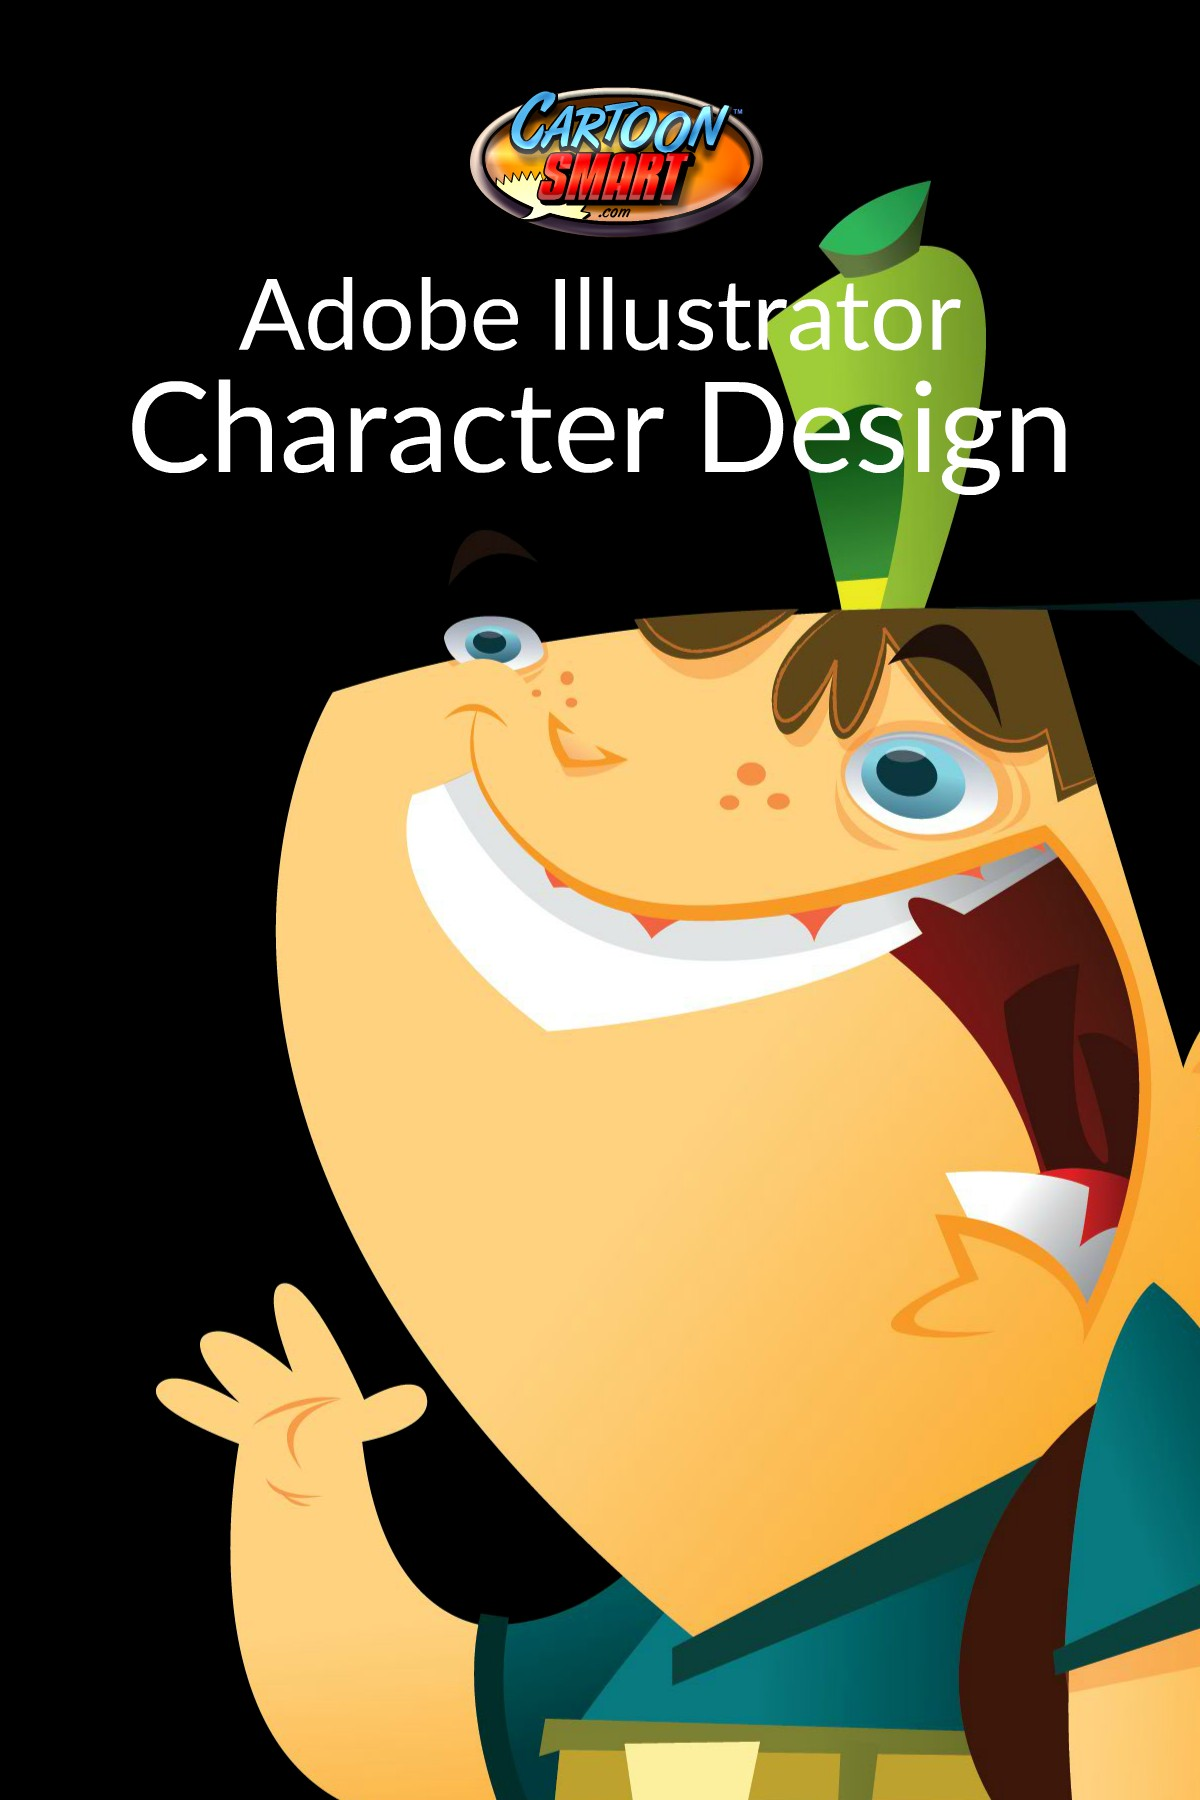 Adobe Illustrator Character Design Tutorial : Adobe illustrator character design subscriber access